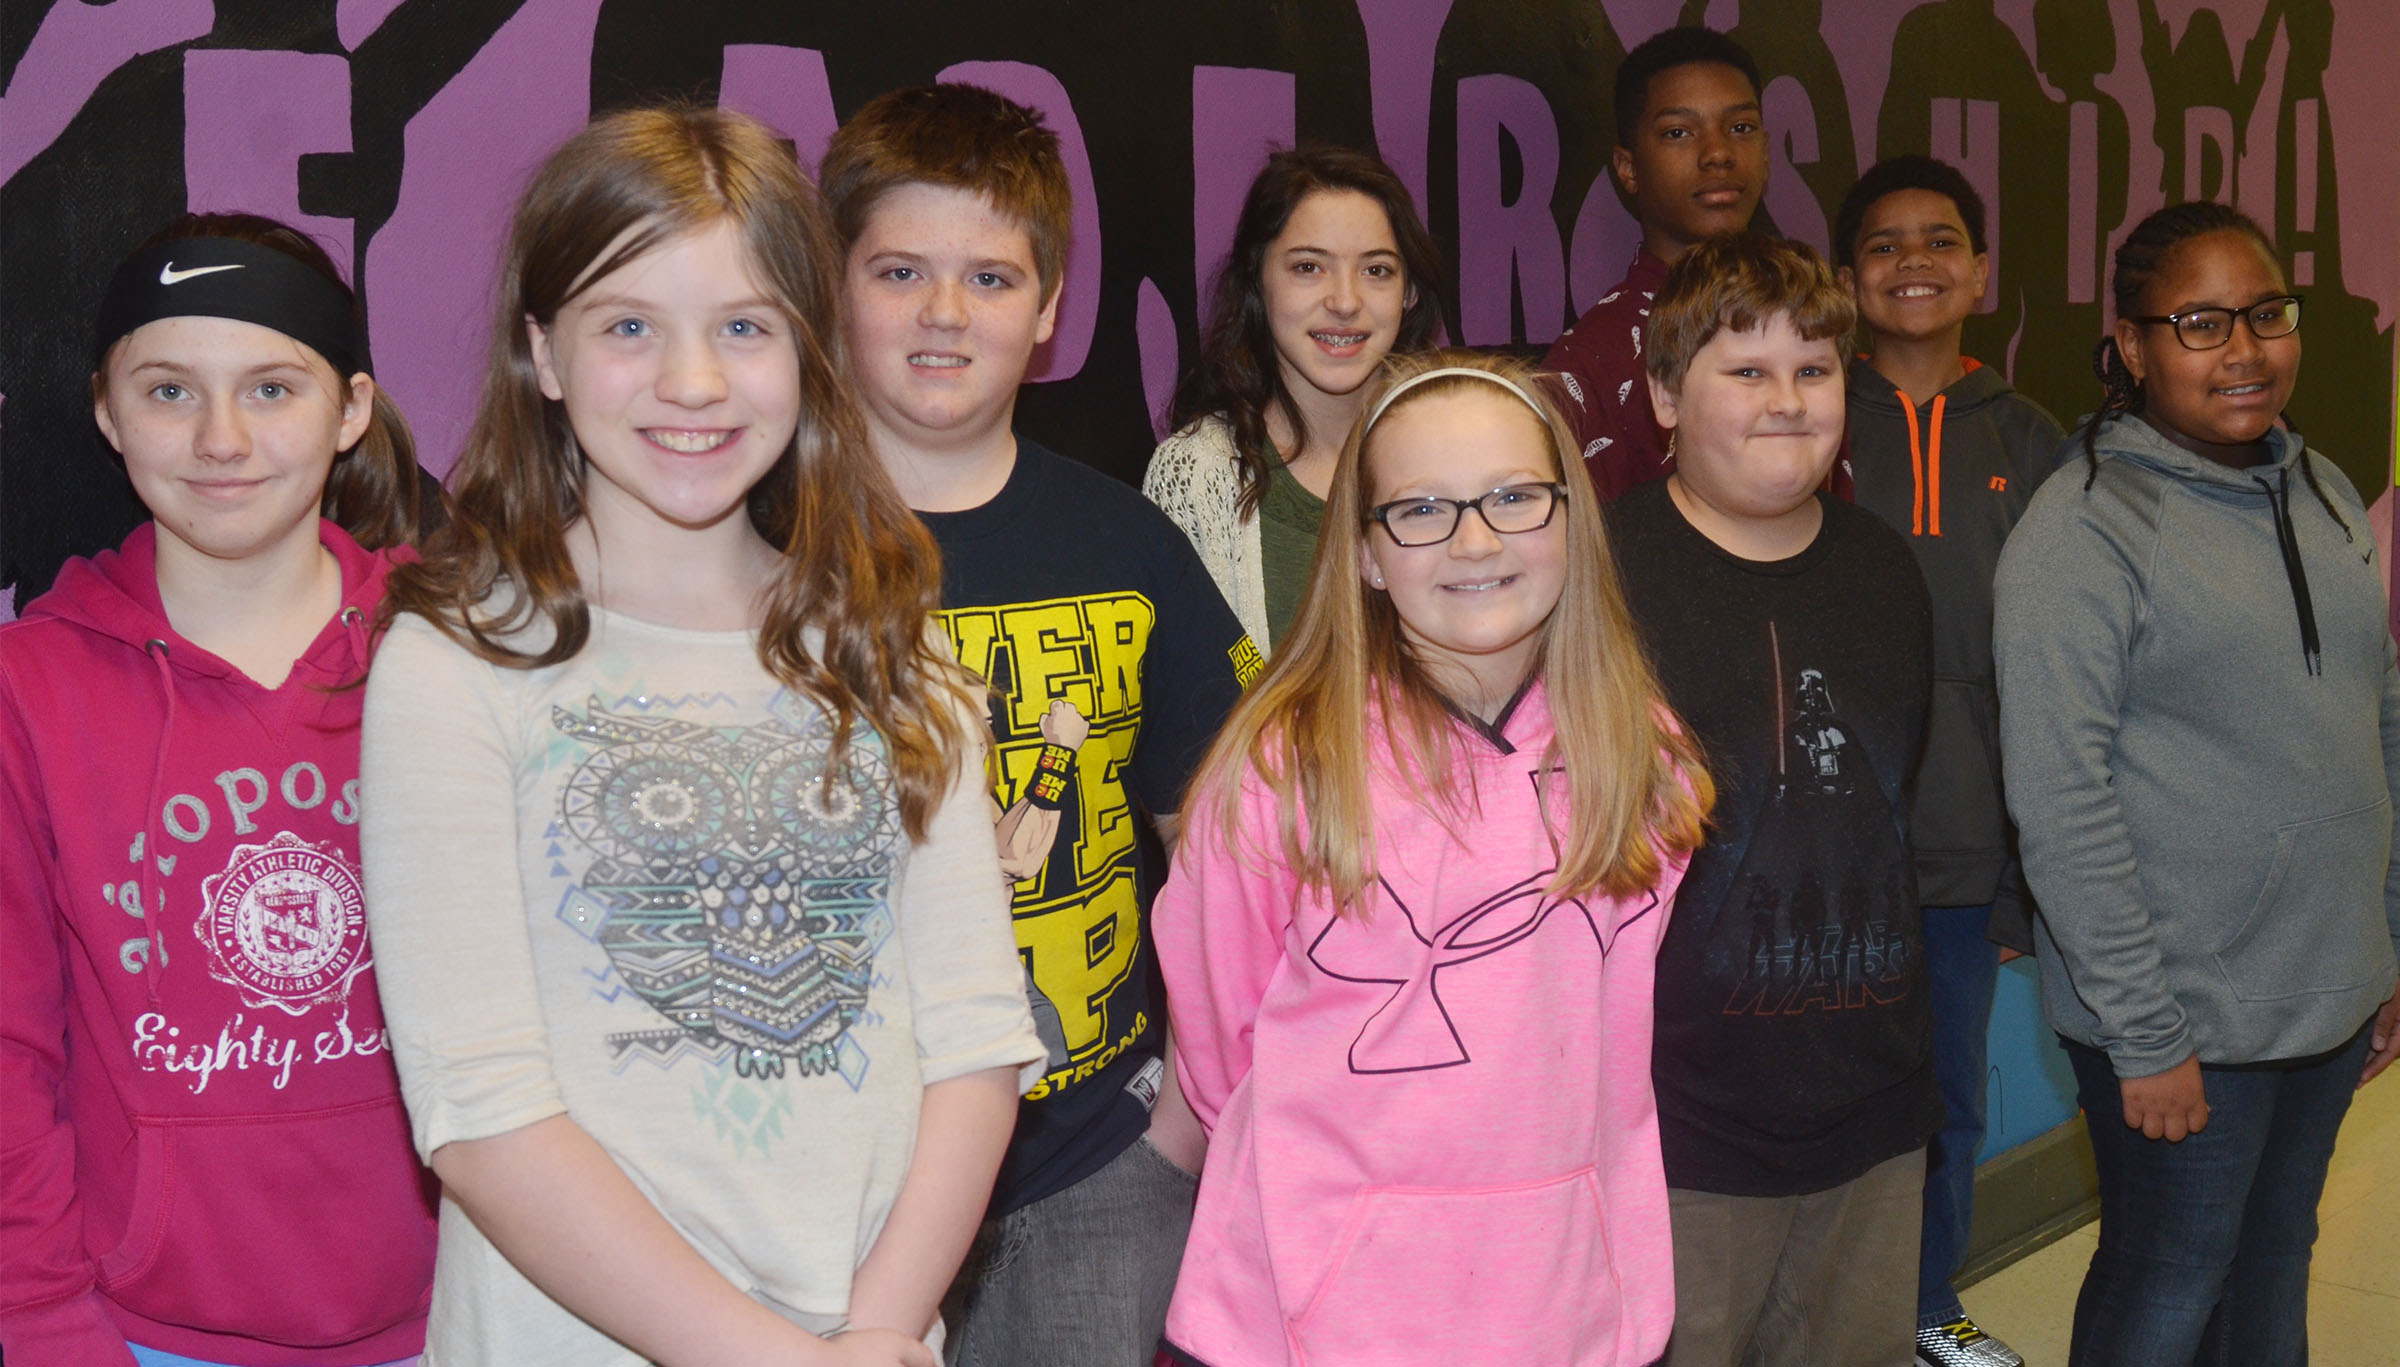 Campbellsville Middle School students were recognized at the Campbellsville Board of Education meeting on Monday, March 13, for receiving Academic Achiever awards. From left are sixth-graders Destiny Hicks and Mikeala Scharbrough, seventh-graders Zachary Underwood and Kaylyn Smith, fourth-graders Lilyan Murphy and Zeke Harris, eighth-grader Zaquan Cowan and fifth-graders Tashaun Hart and KyAshia Mitchell. Absent from the photo are eighth-graders Taylor Whaley and Sheddy Taylor.